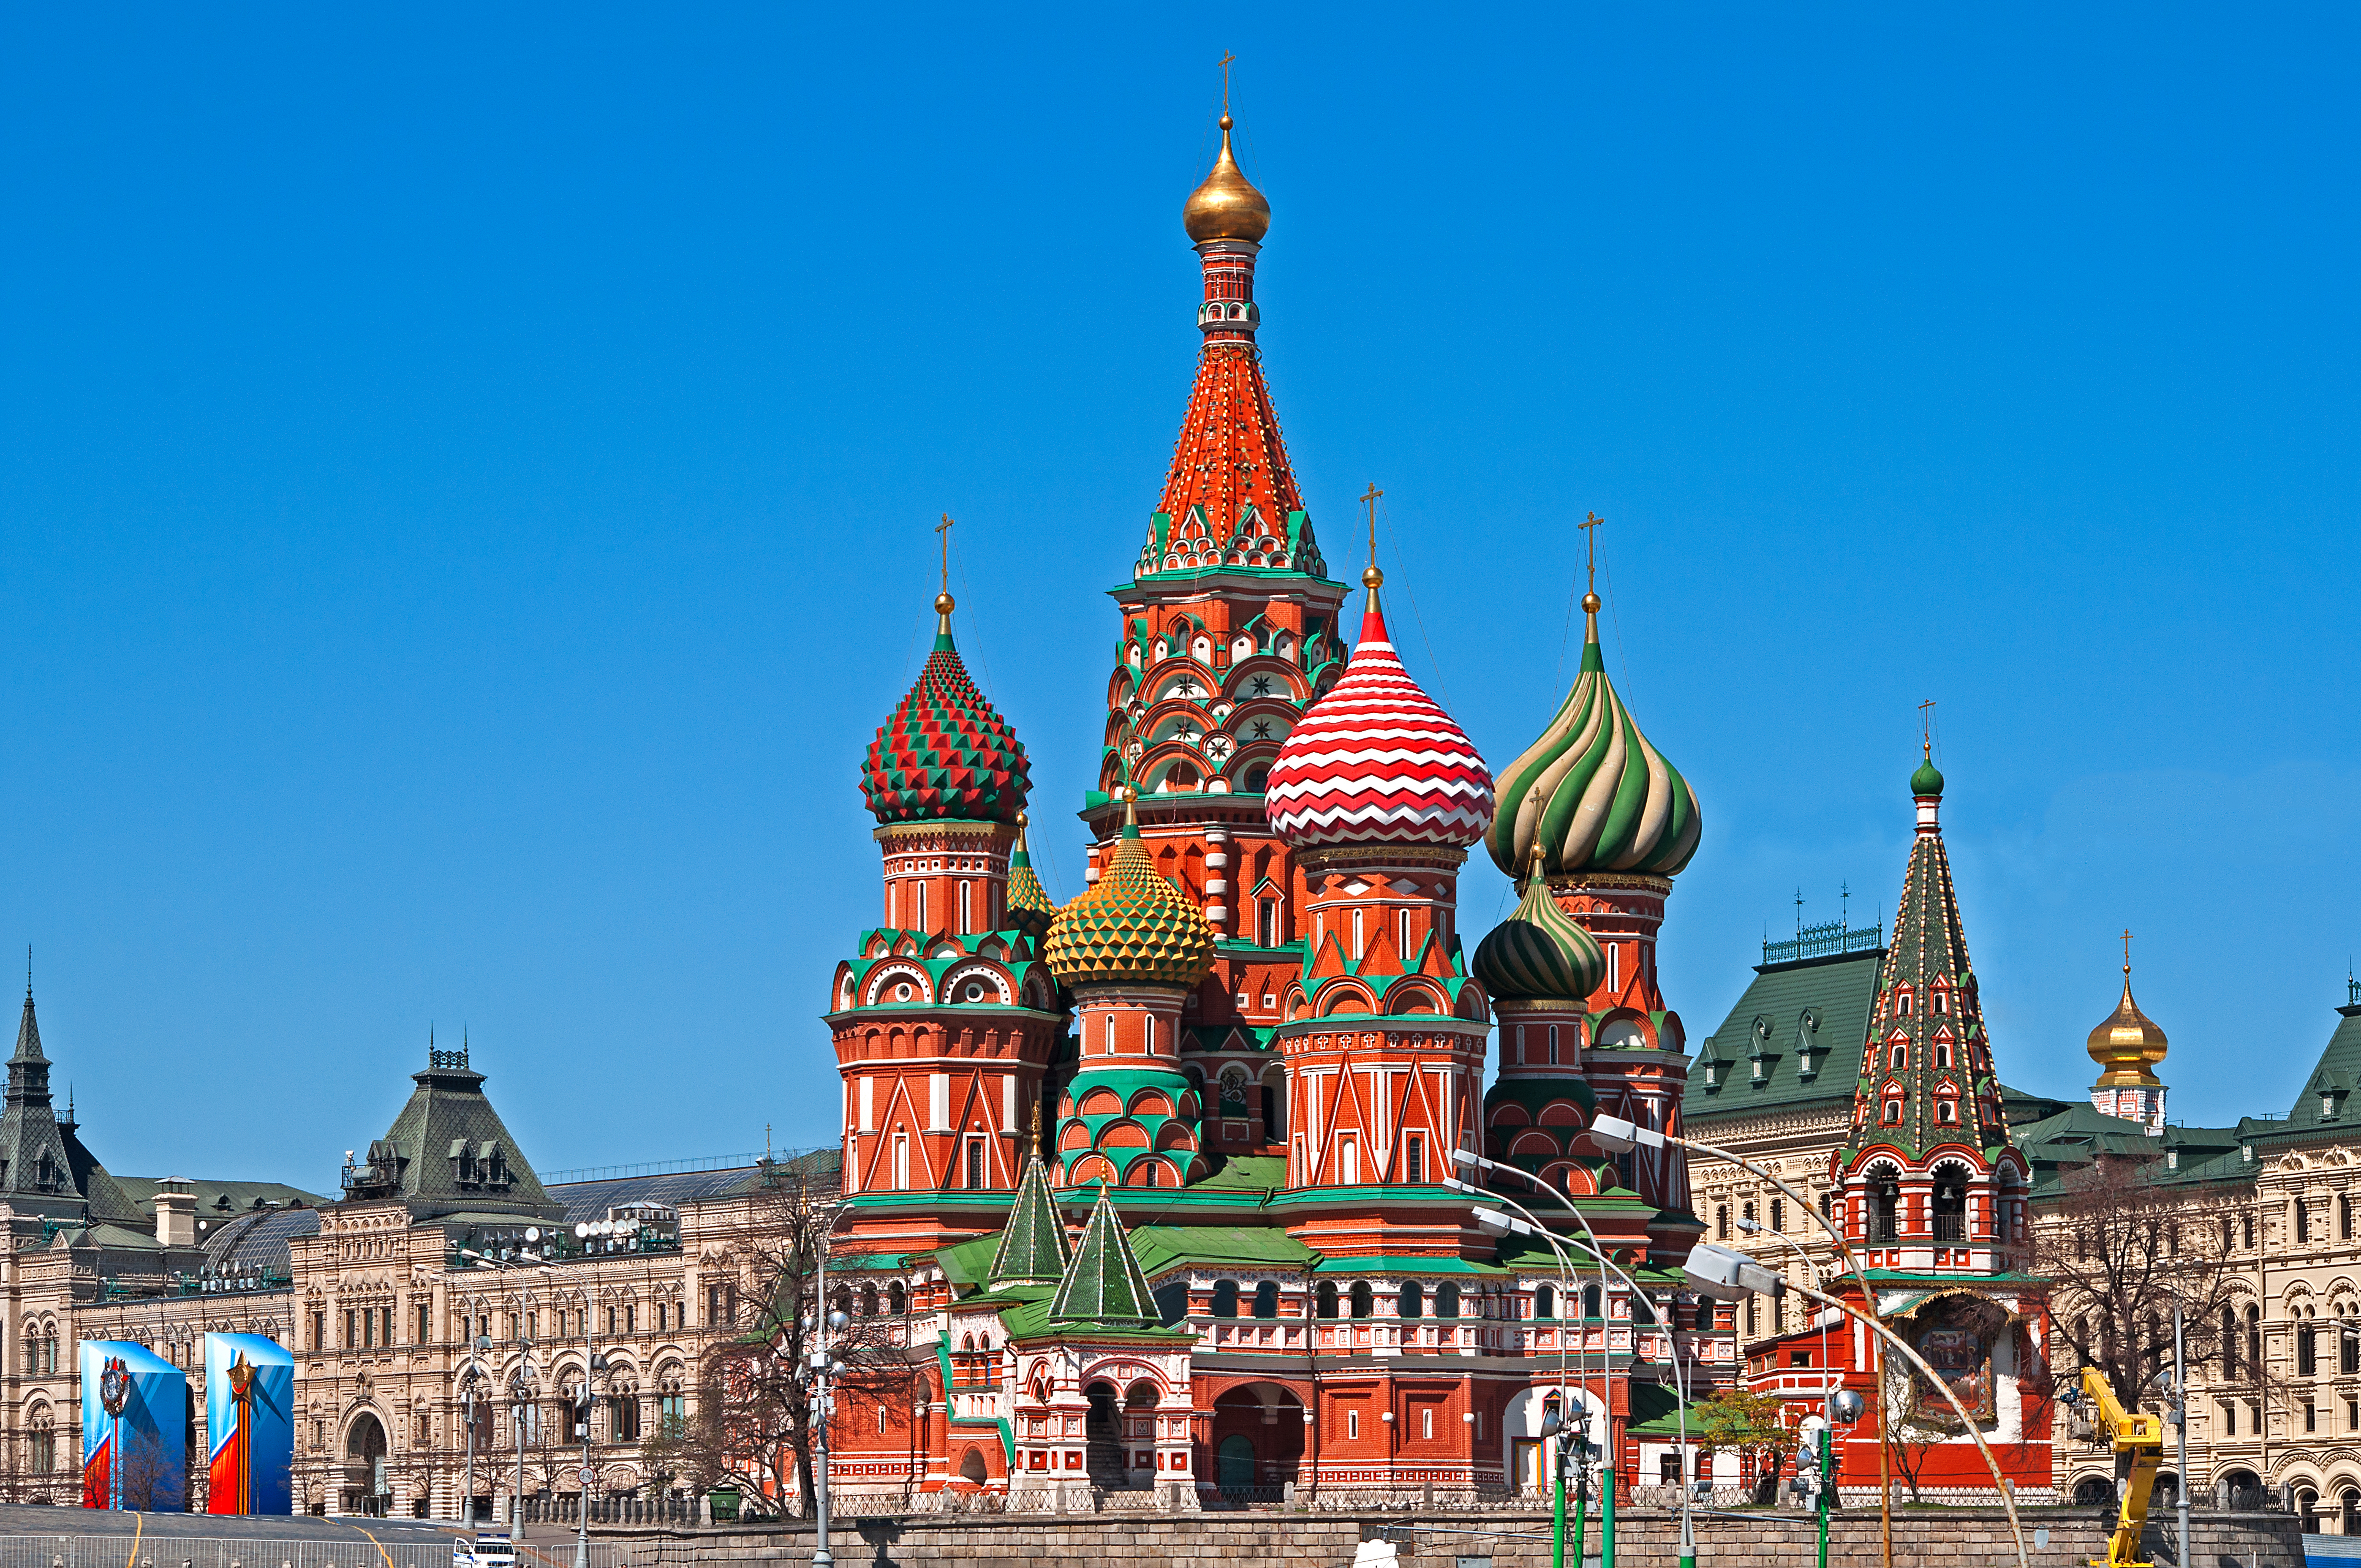 St Basil\u0027s Cathedral, Moscow [8,576x5,696] : HI_Res